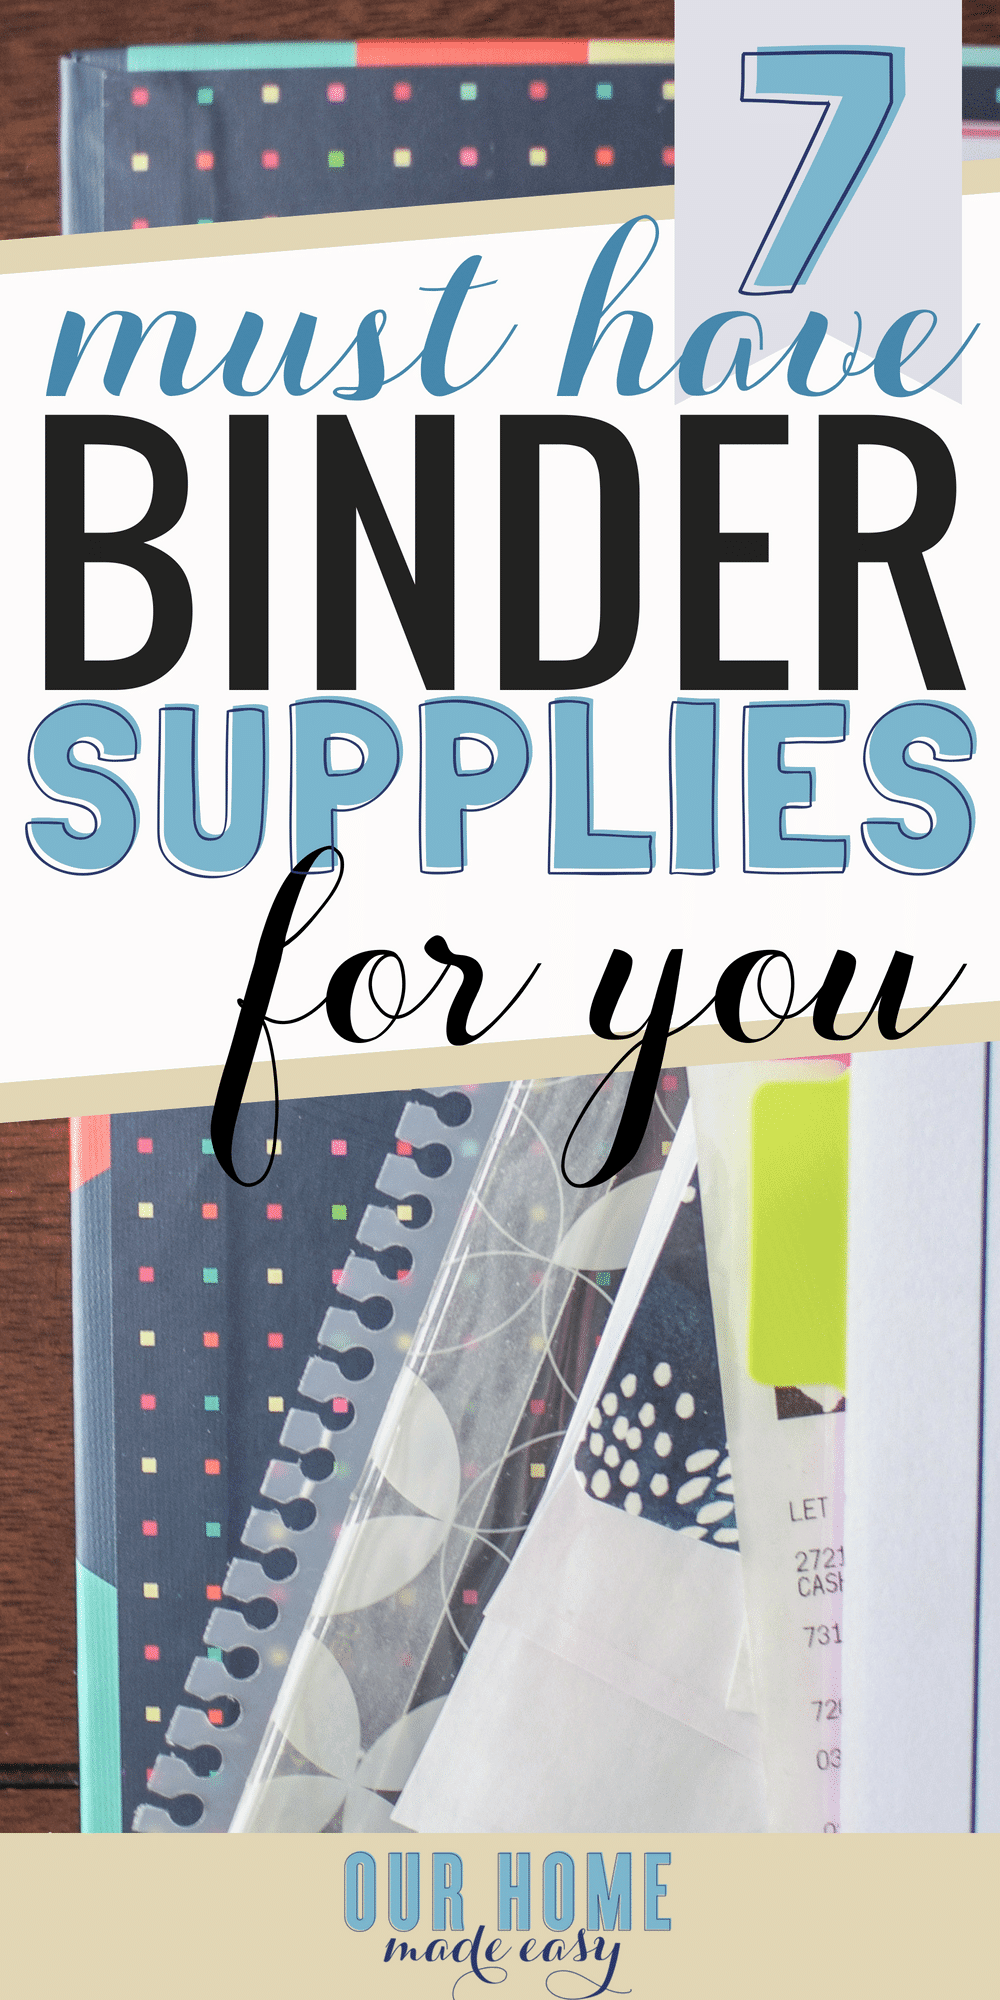 Add some fun with these binder supplies. These are perfect for making The Ultimate Home Binder perfect for your family! #organization #declutter #goals #home #organized